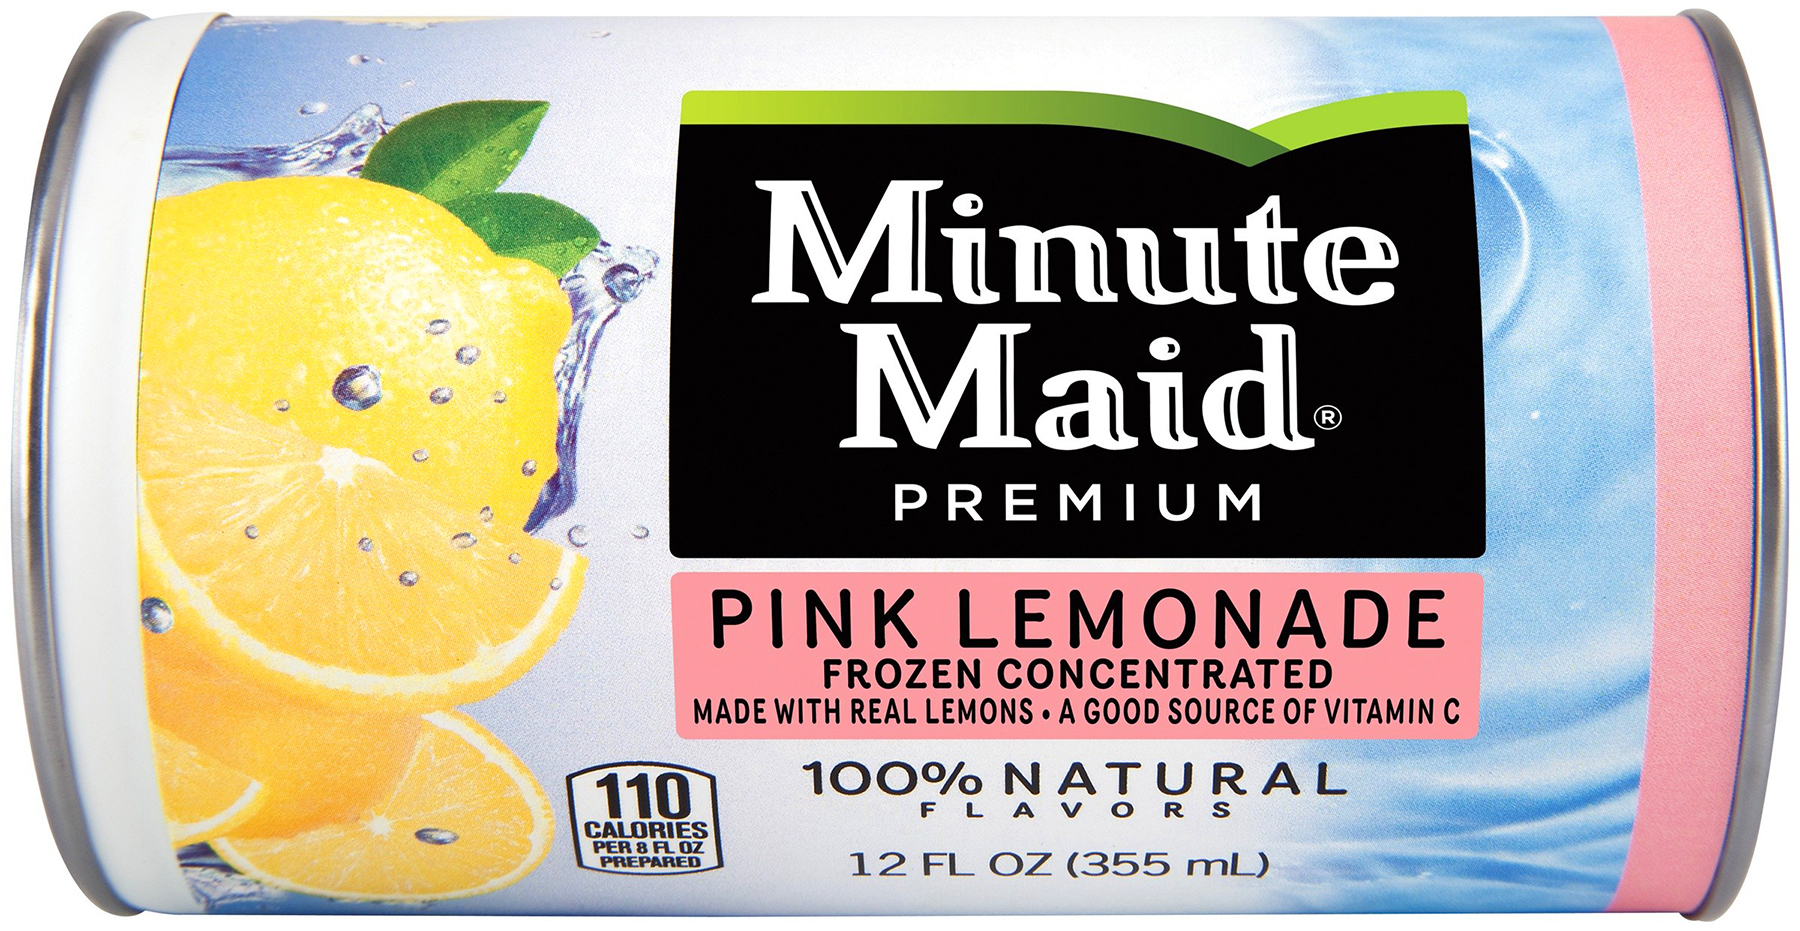 Minute Maid Pink Lemonade Frozen Concentrate Fruit Drink